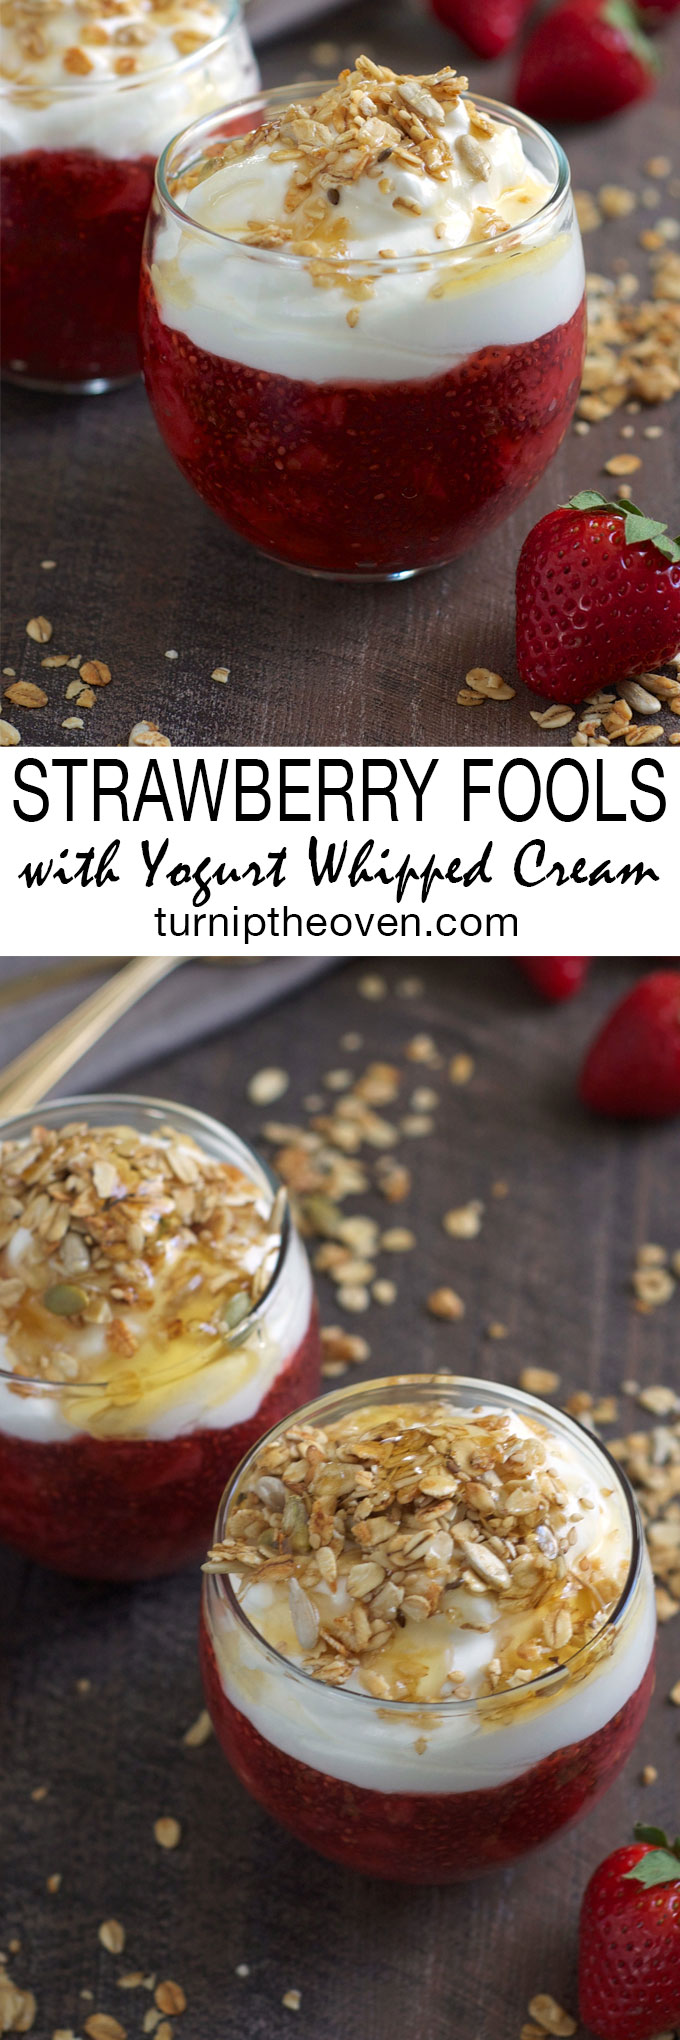 These simple and delicious strawberry fools are made with chia seeds and topped with a honey Greek yogurt whipped cream. Serve them for breakfast or for dessert!